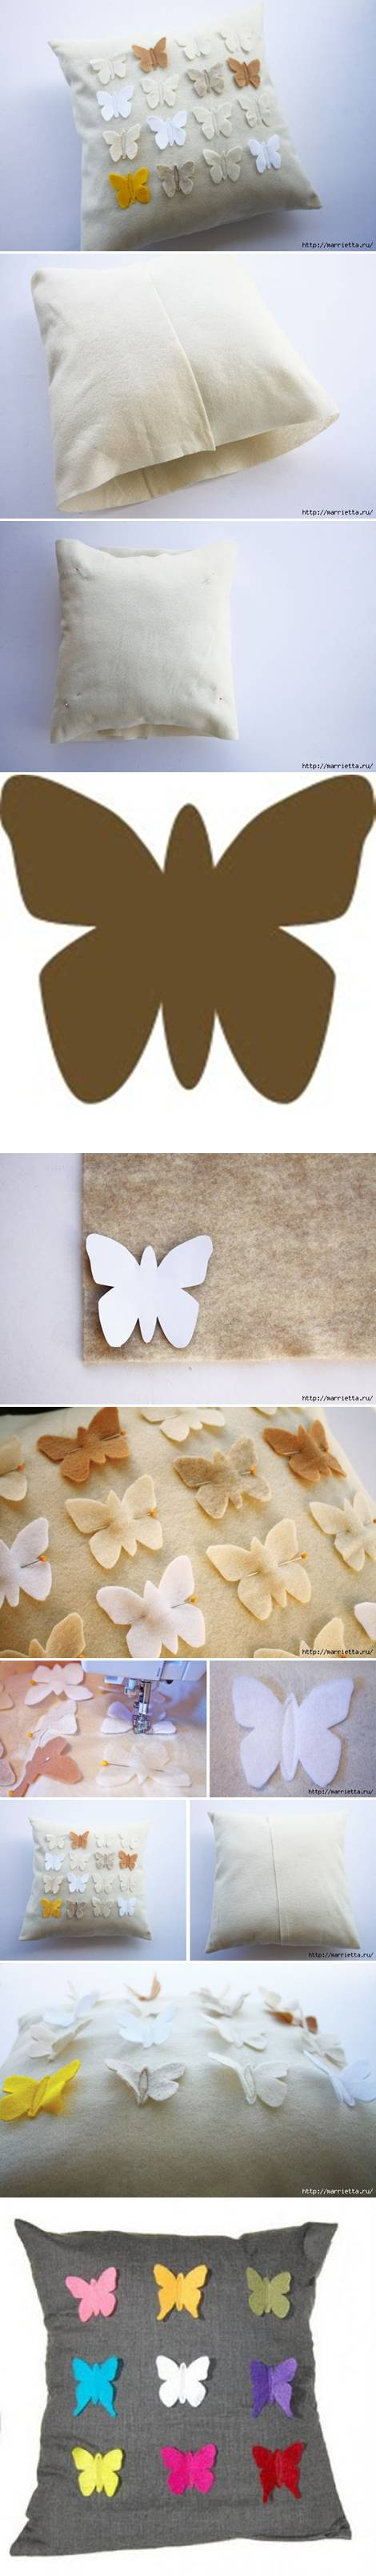 How To Make Butterfly down Pillow Cover step by step DIY tutorial instructions